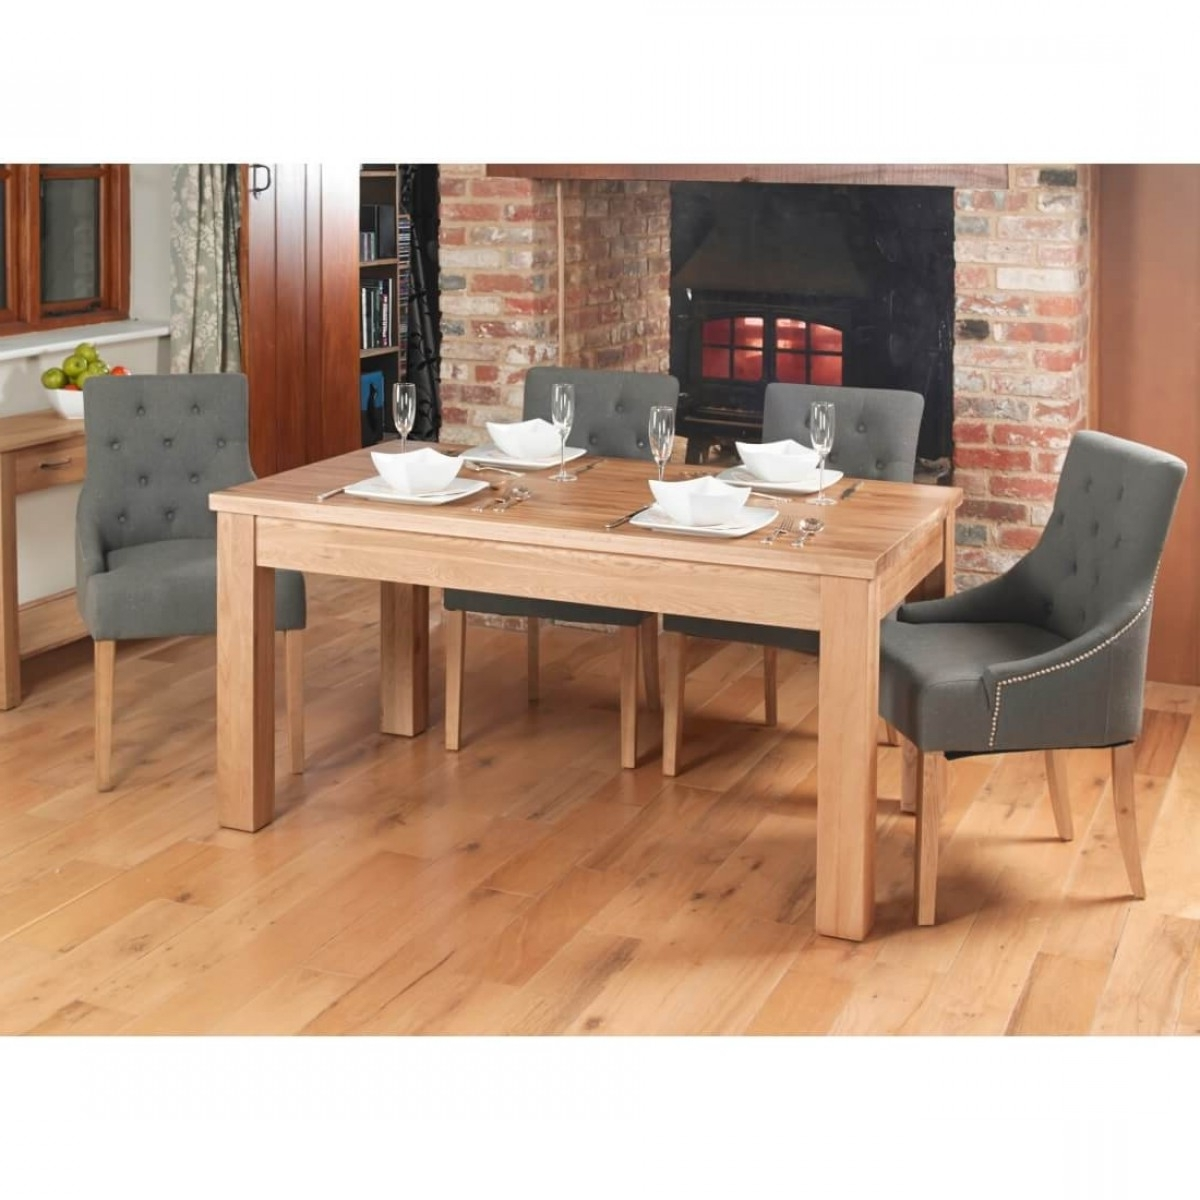 Dining Tables – Mobel Extending Oak Dining Table (4 8 Seater) Cor04E Intended For Most Current 8 Seater Oak Dining Tables (View 8 of 25)